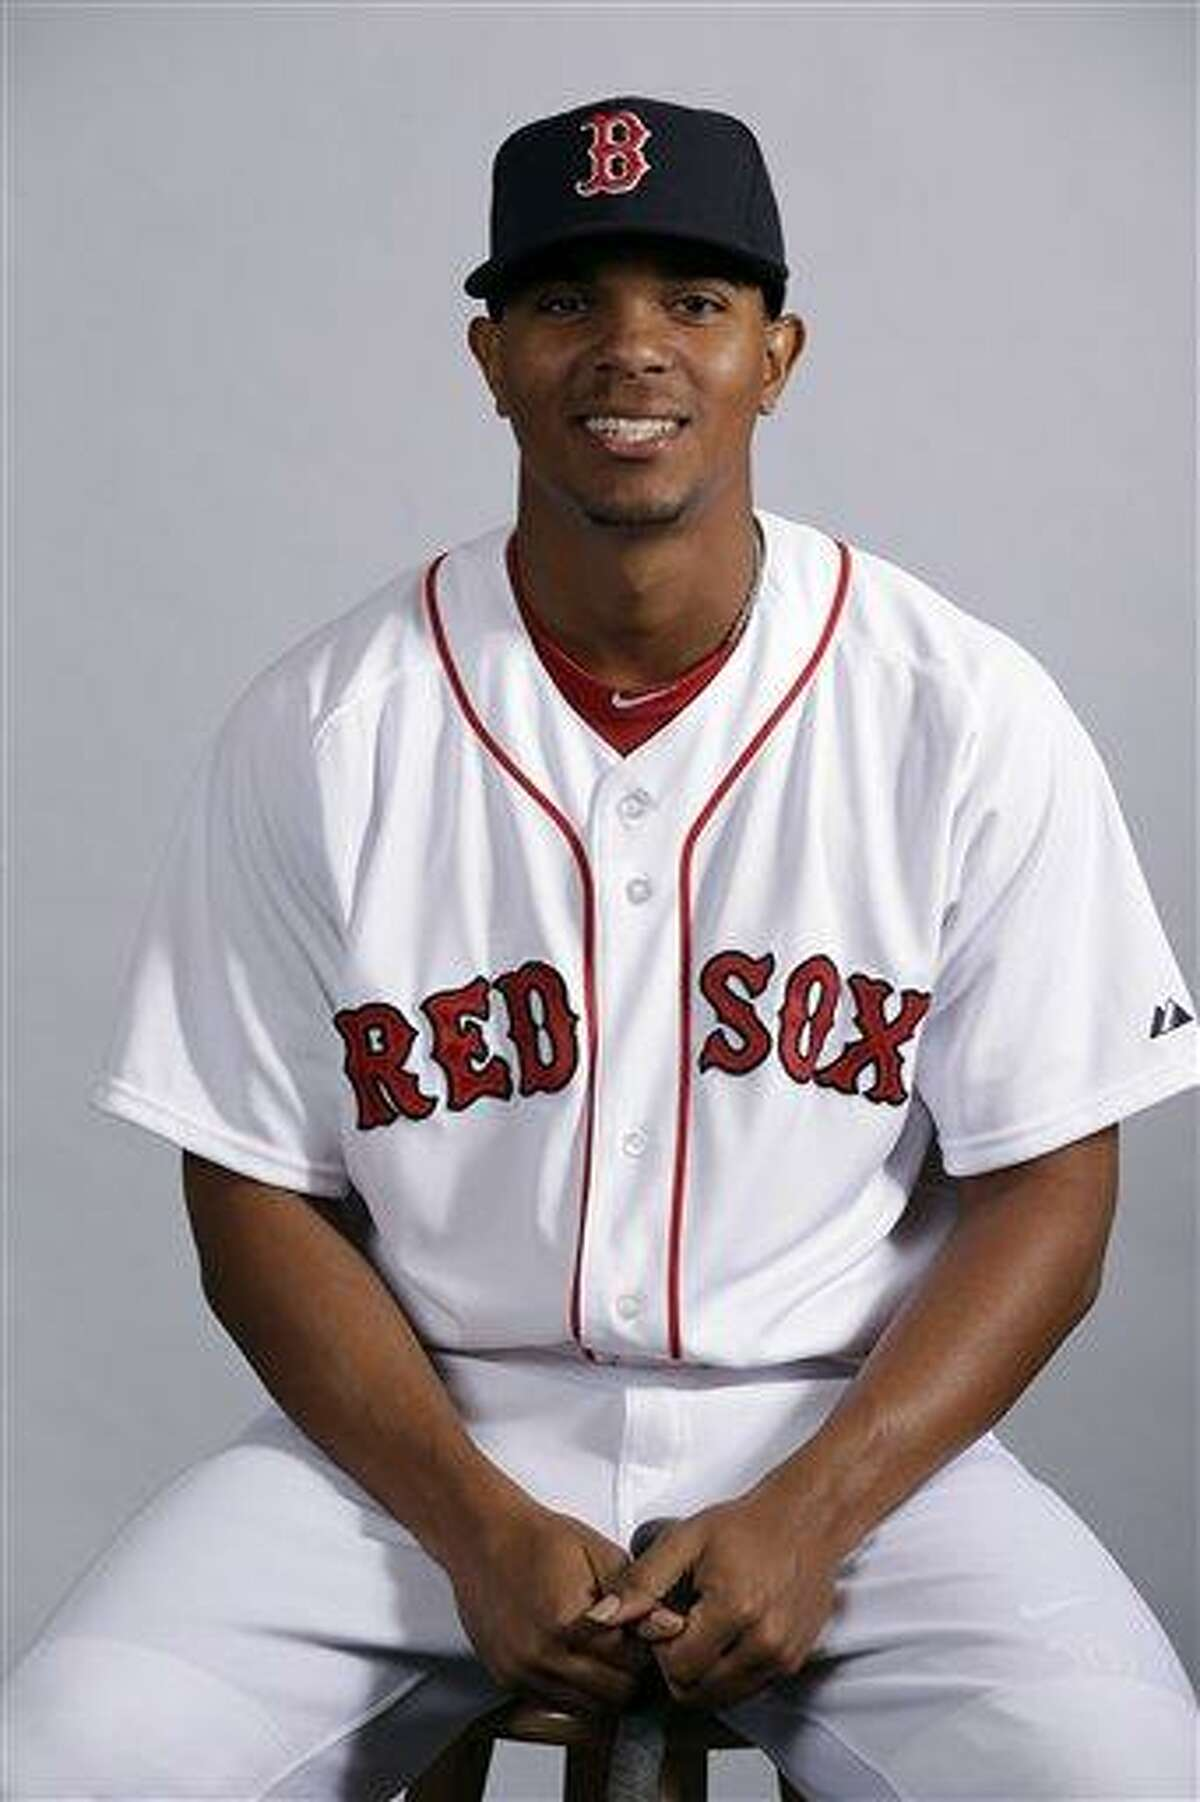 FILE - This Feb. 17, 2013 file photo shows Boston Red Sox's Xander Bogaerts posing during team photo day in Fort Myers, Fla. Bogaerts, Boston's top prospect, is chugging away at his first spring training, doing whatever he can to impress staff and teammates. Either way, though, he'll soon be headed out of town. (AP Photo/Chris O'Meara, File)